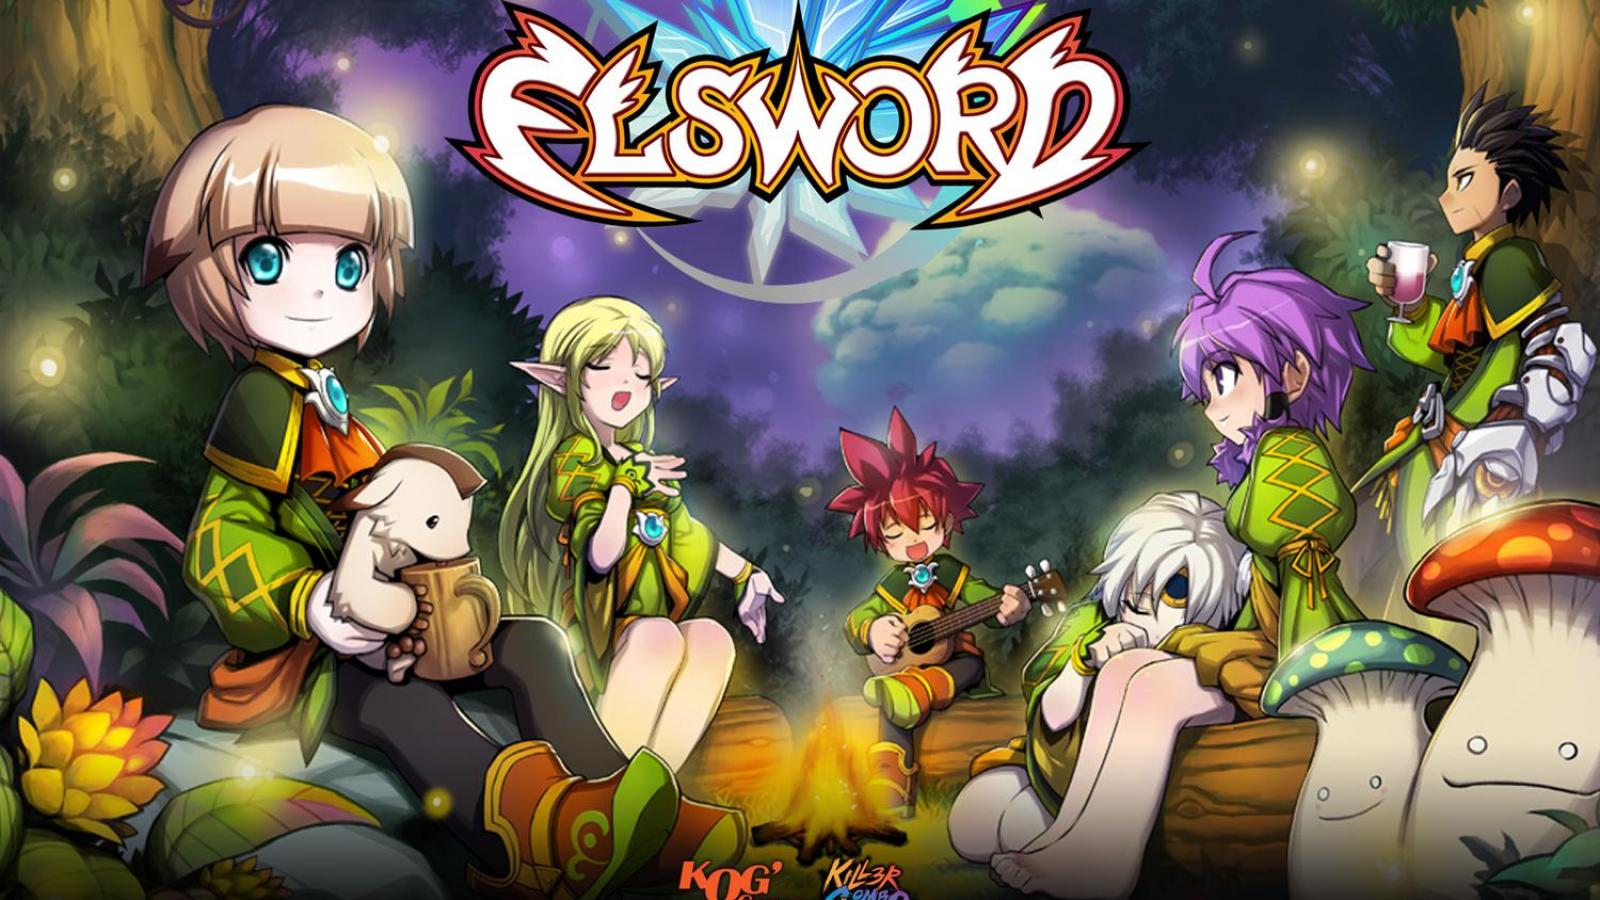 Elsword   161209   High Quality and Resolution Wallpapers on 1600x900